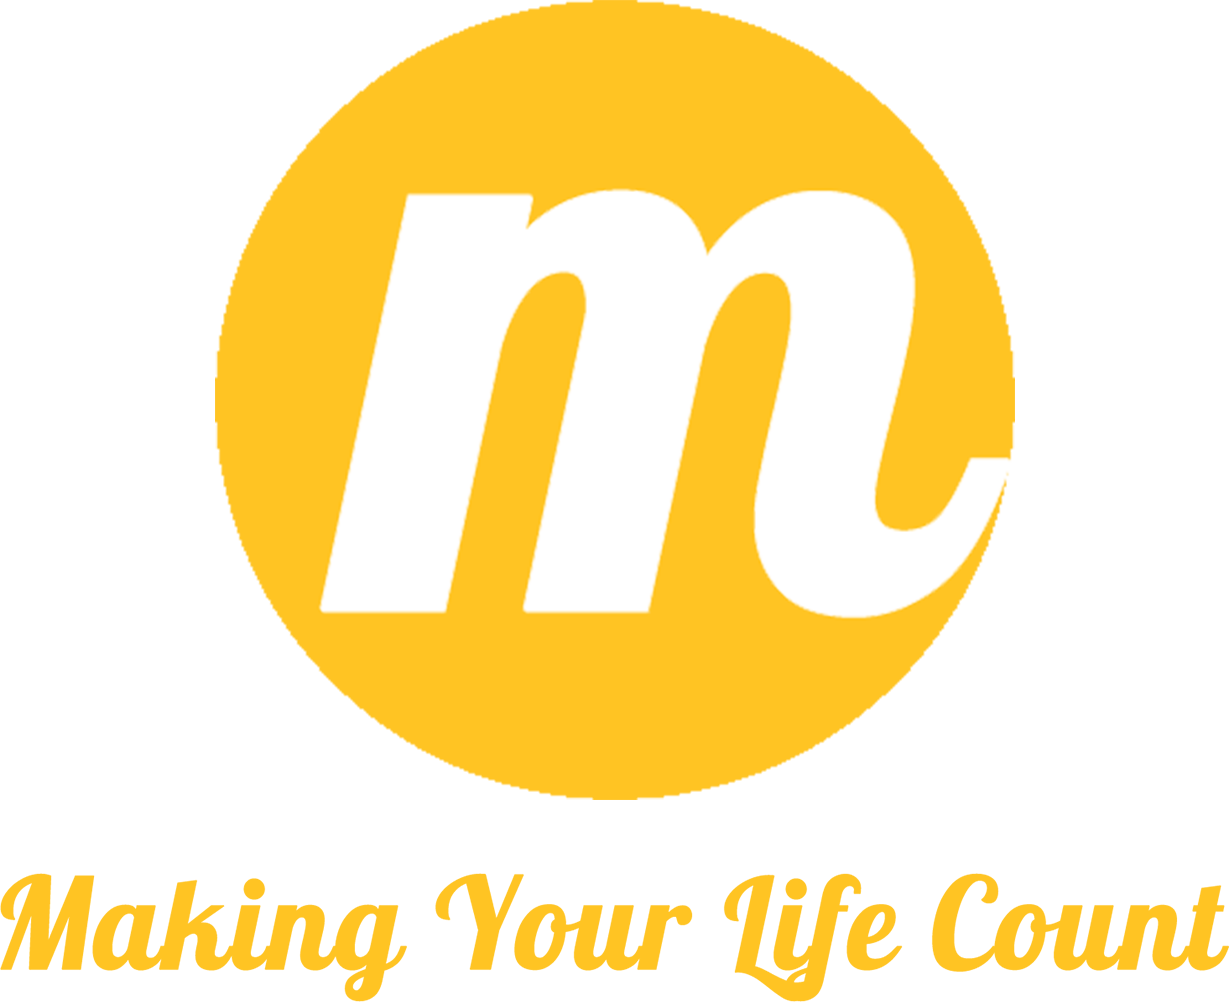 making-your-life-count-logo.png